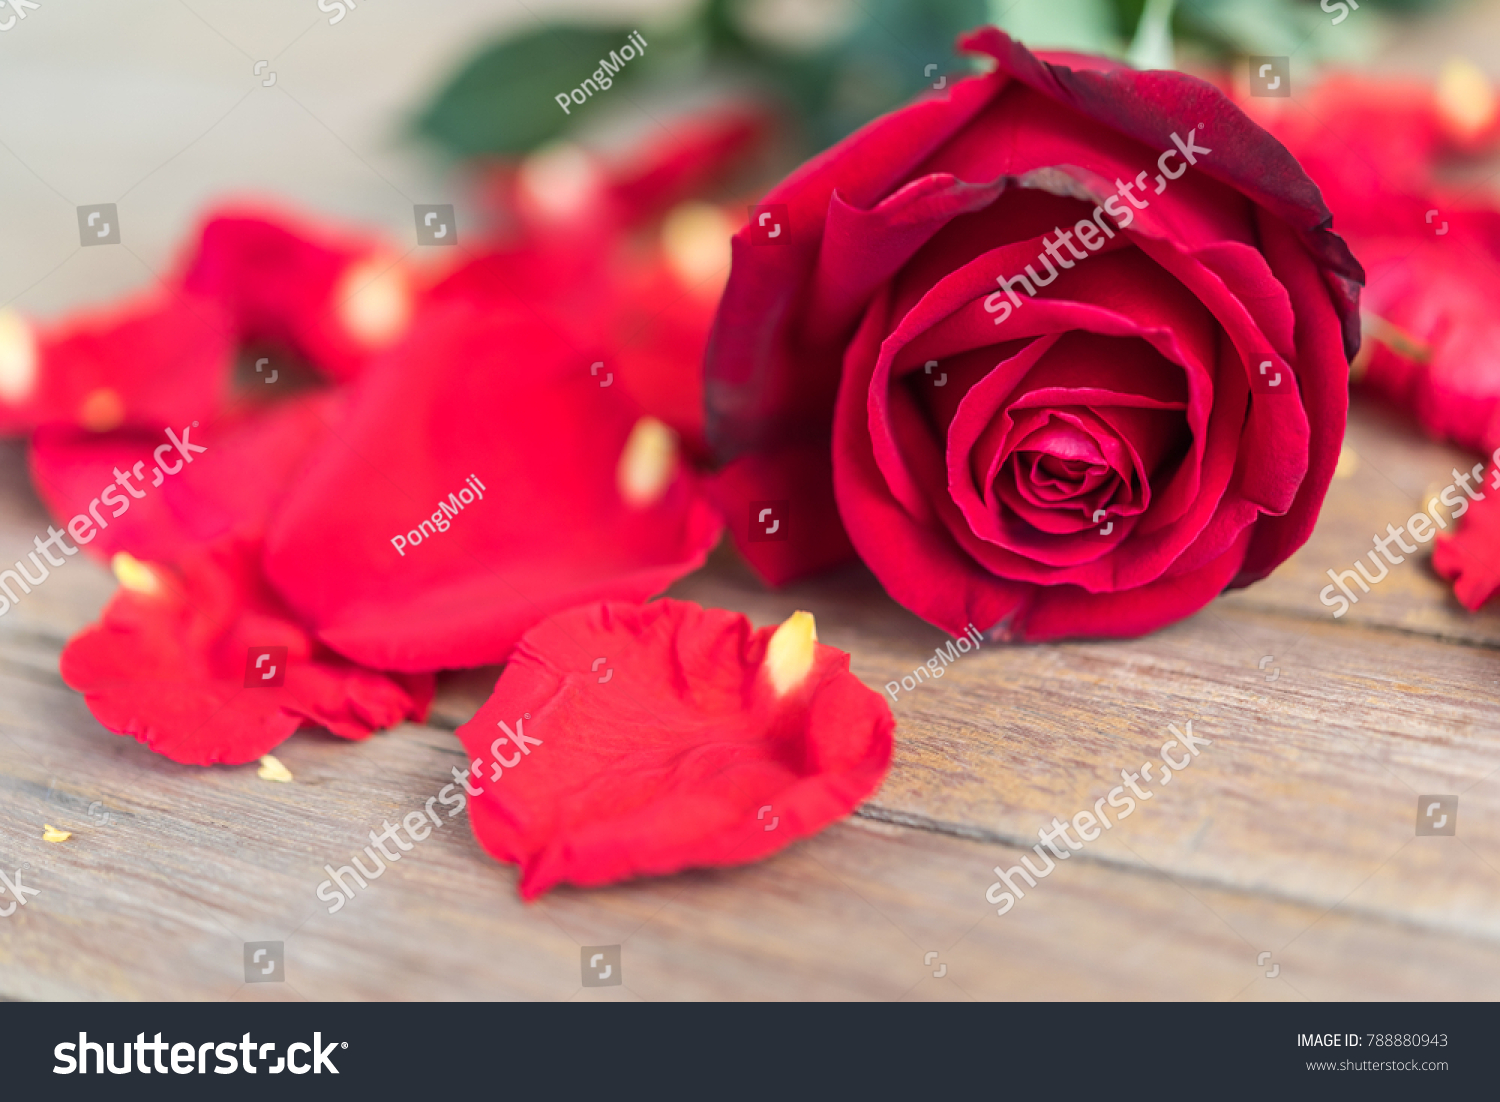 Red rose flower nature beautiful flowers stock photo edit now red rose flower nature beautiful flowers from the garden and petal of red rose flower on izmirmasajfo